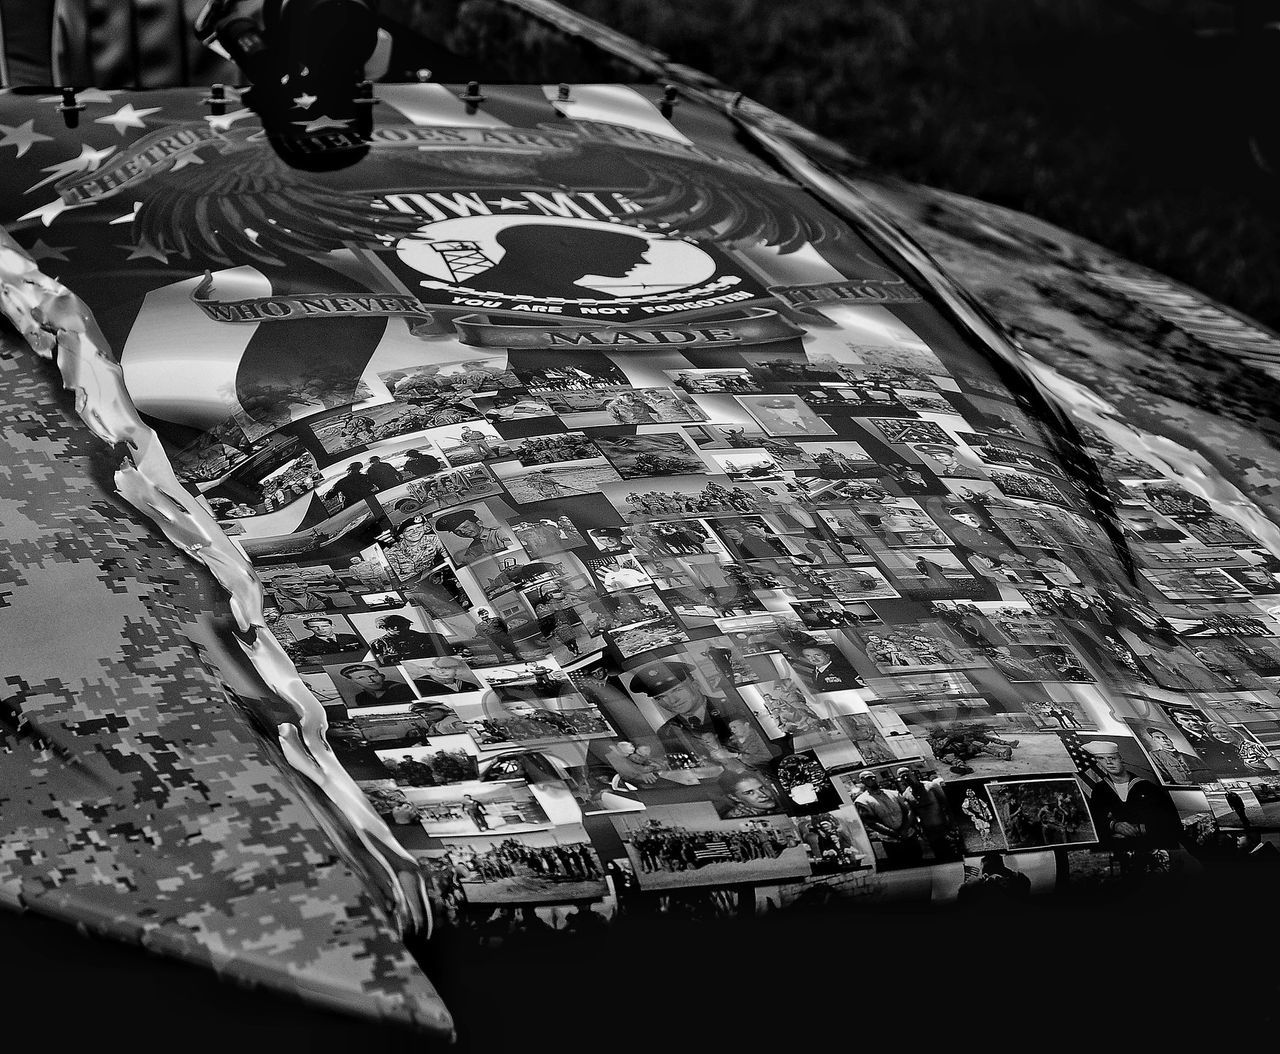 High Angle View Outdoors Day No People Close-up Black&white Texas Photographer EyeEm Gallery Blackandwhite Photography This Week On Eyeem Black & White Photography Eyeemphotography Black And White Collection! Blackandwhite